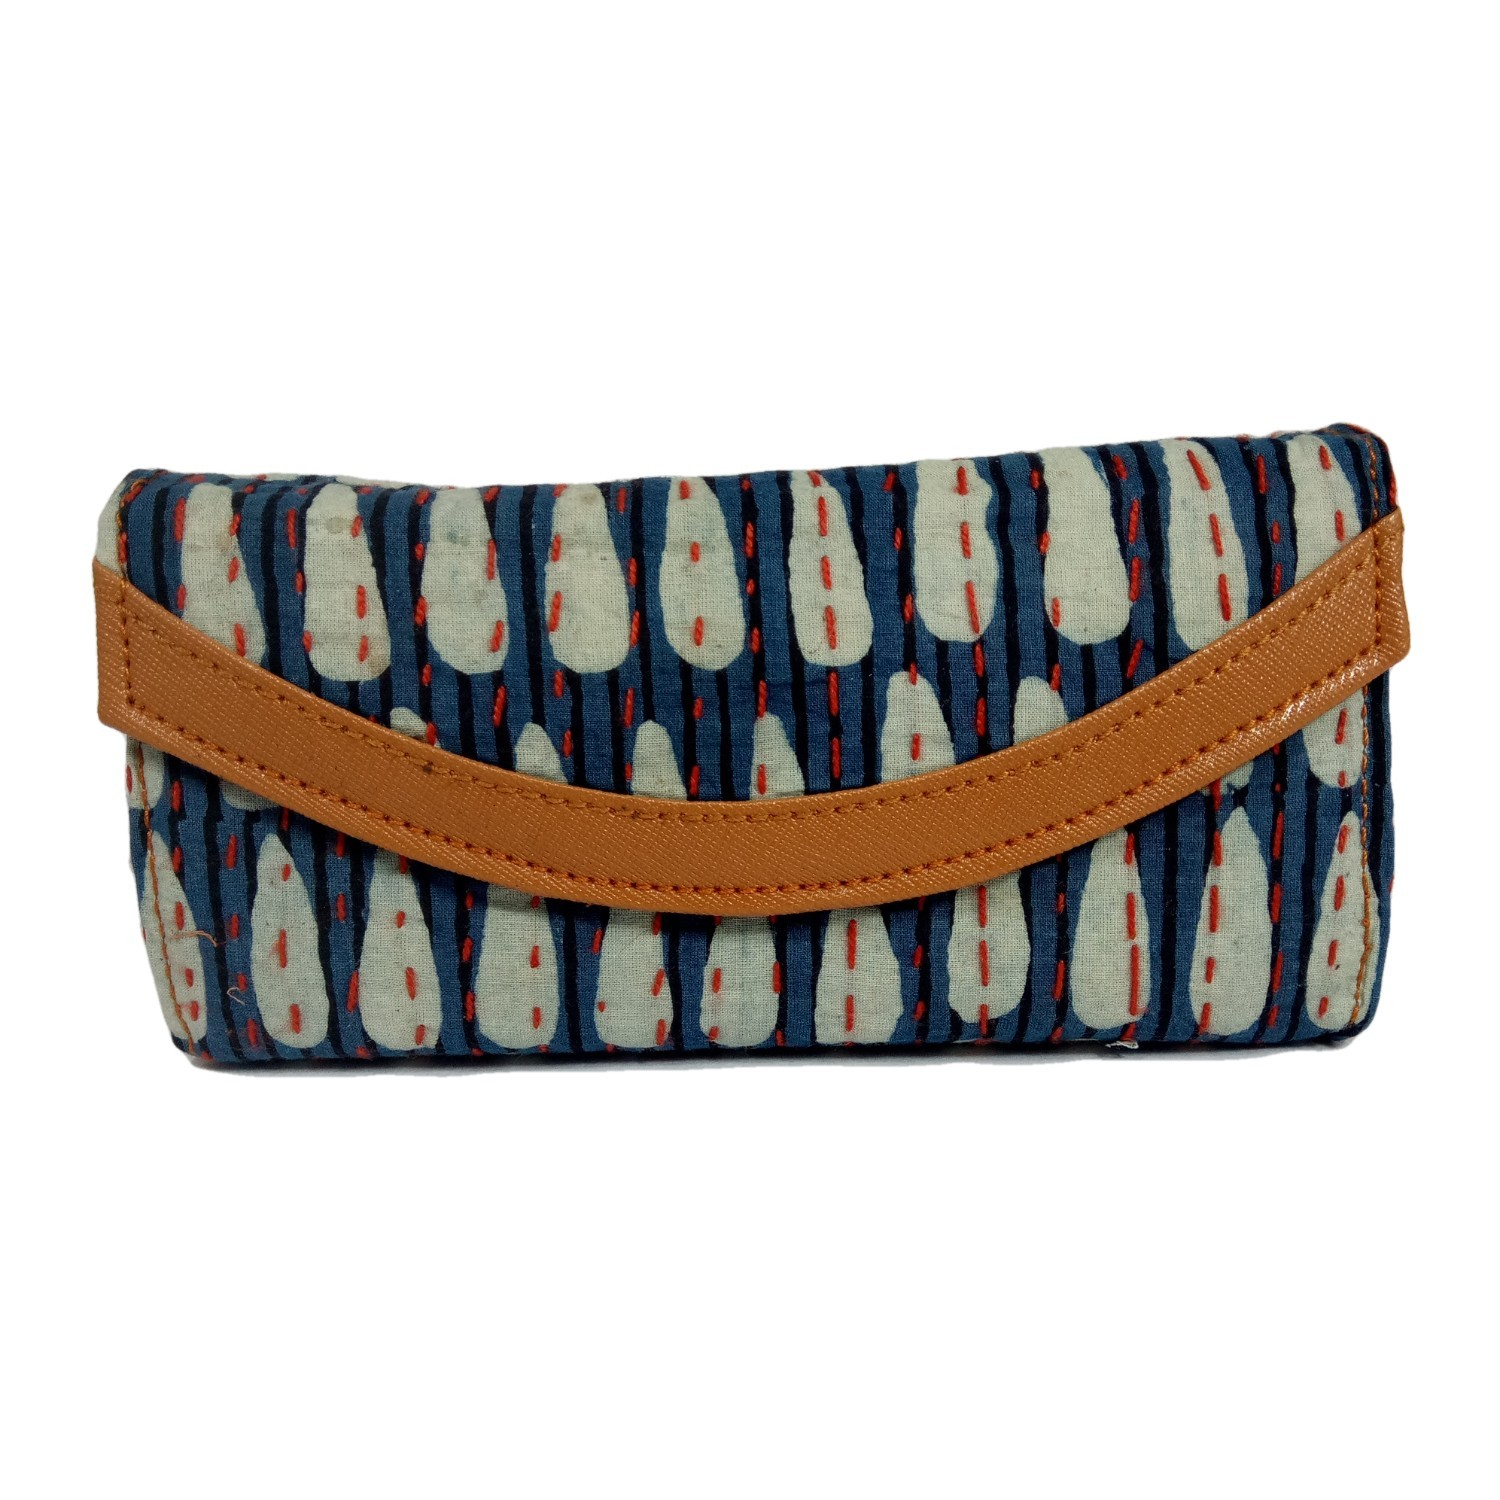 Handmade Excellent Cream Genuine Clutch by Women Self Help Groups of Rajasthan